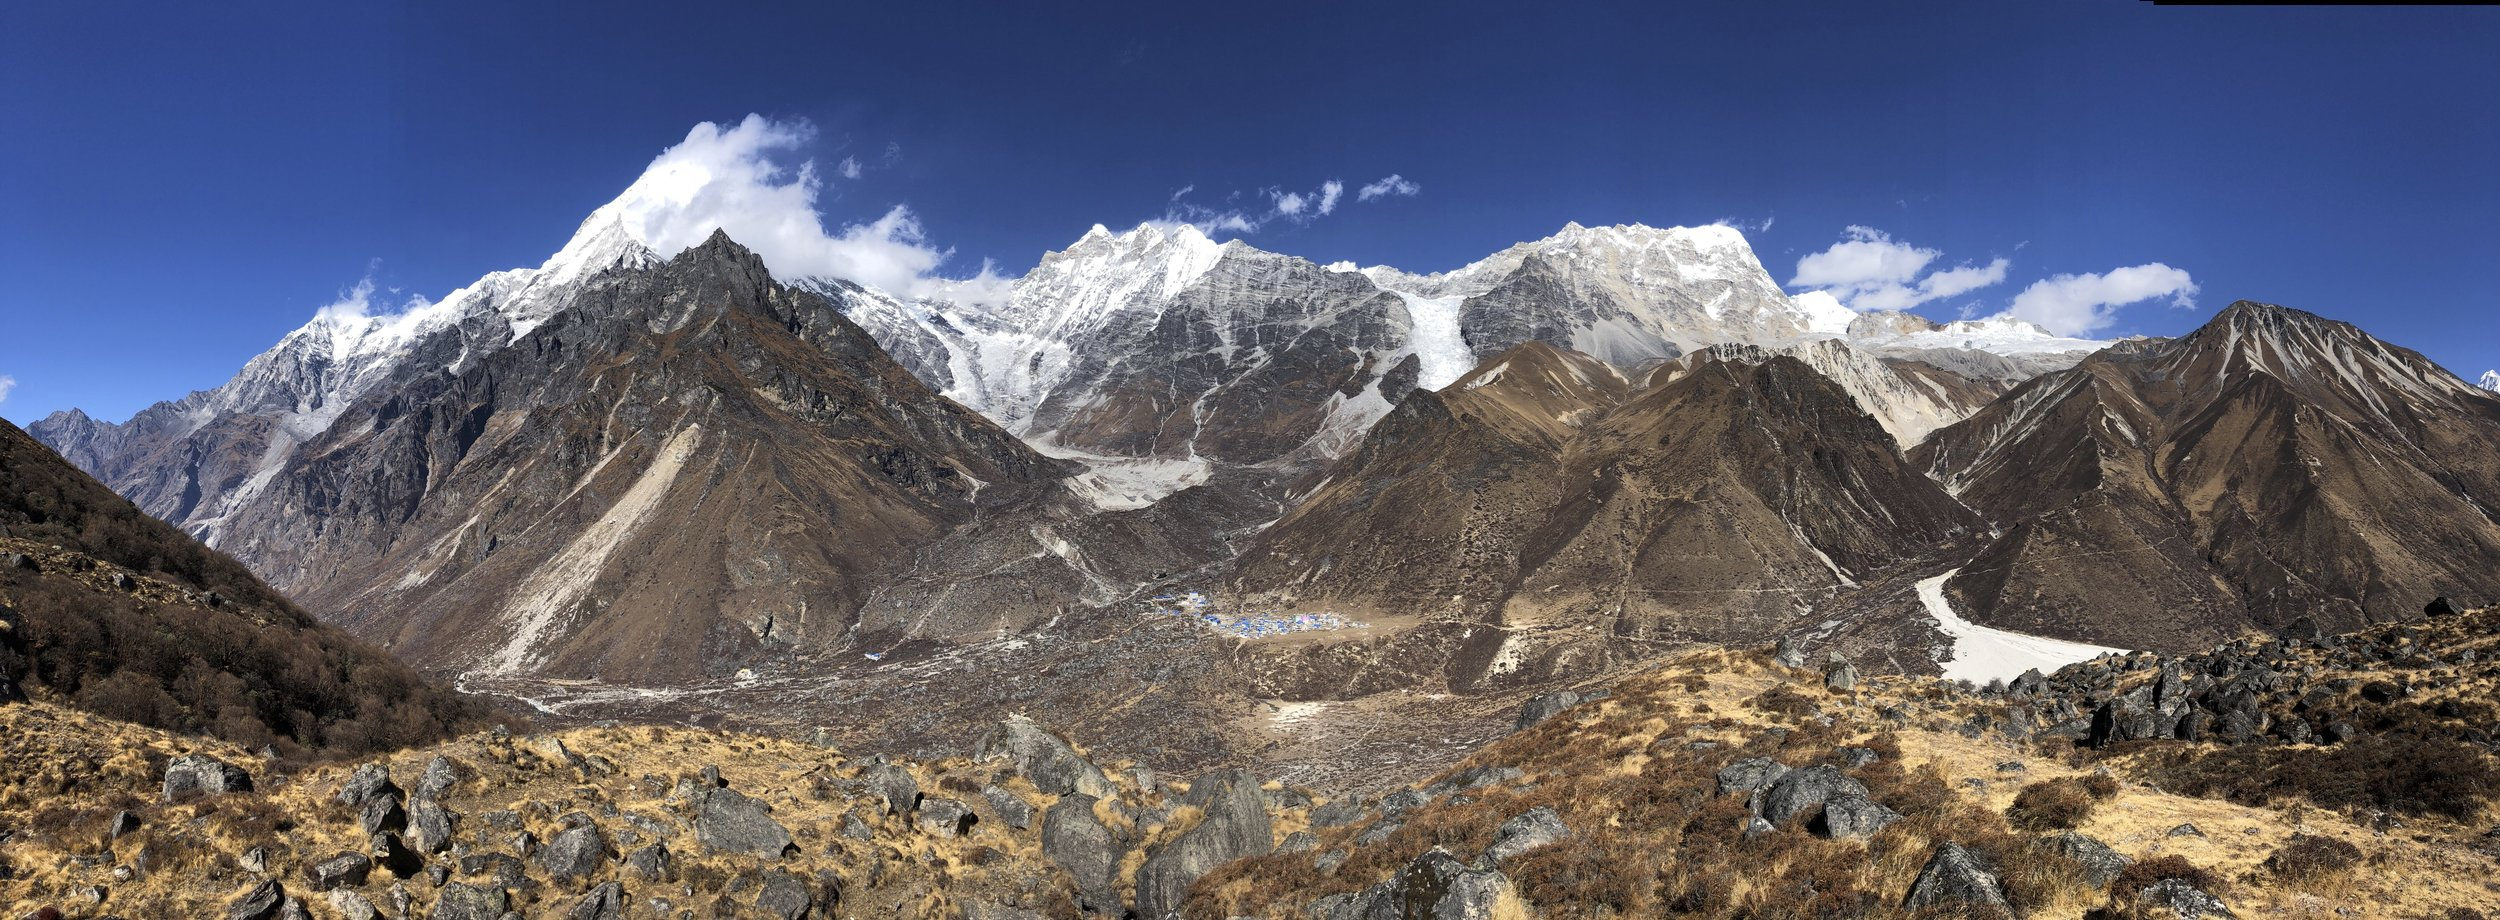 Langtang Lirung from the basecamp for Ganjala Pass at 4,300m.